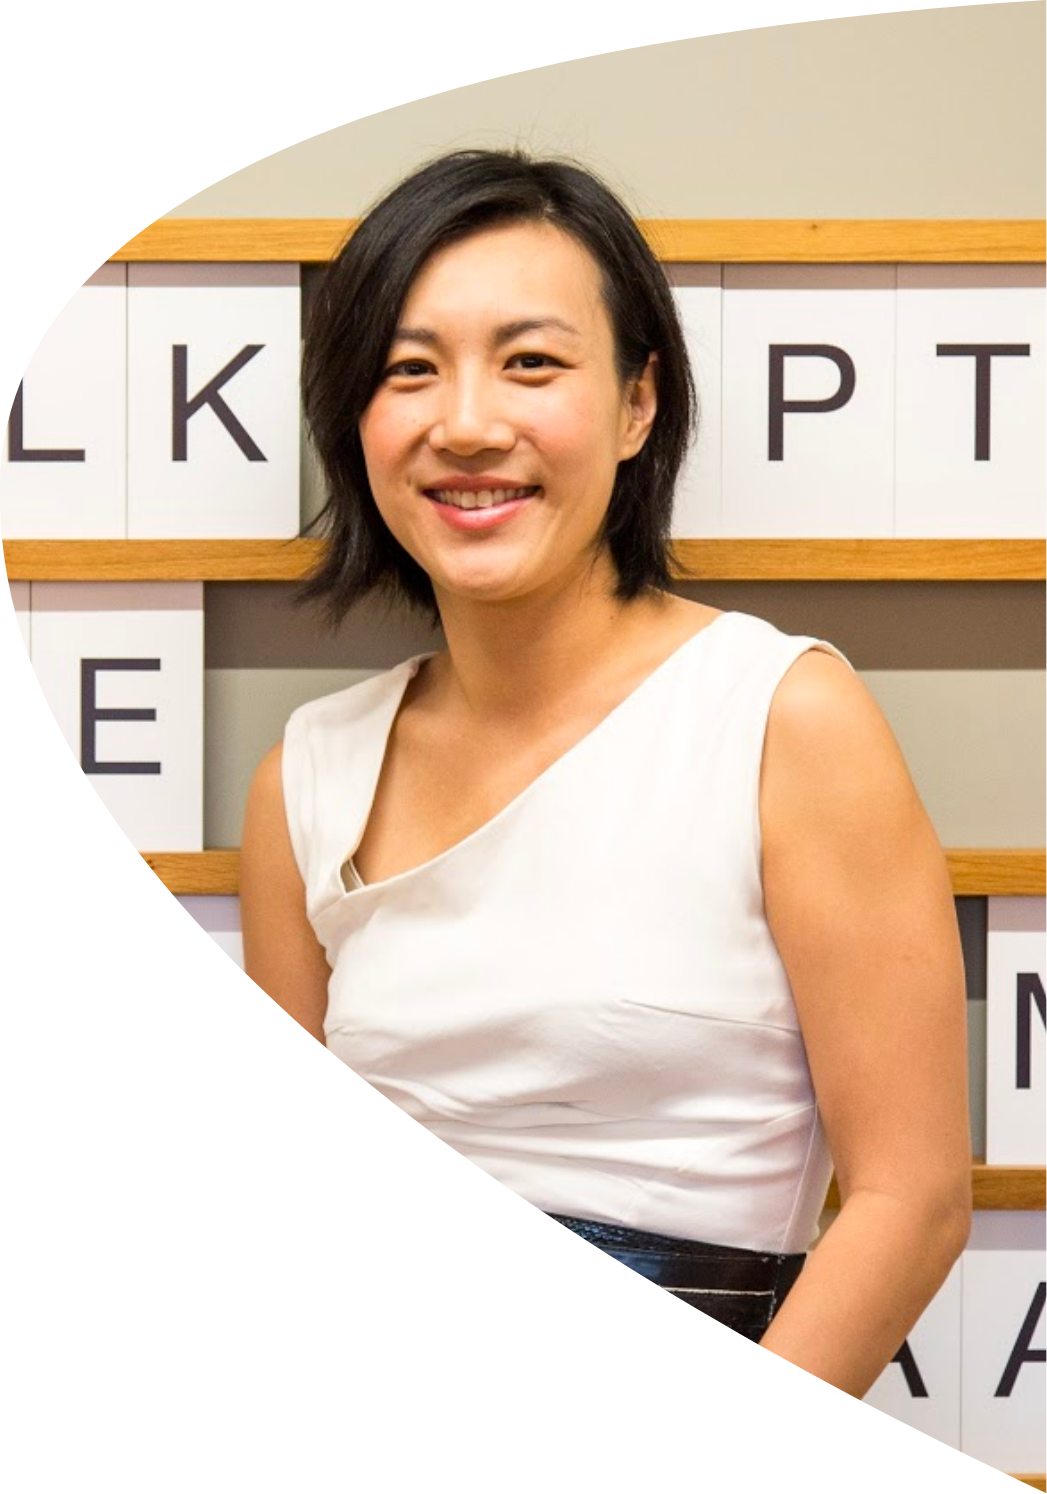 Image of Dr. Lily Peng